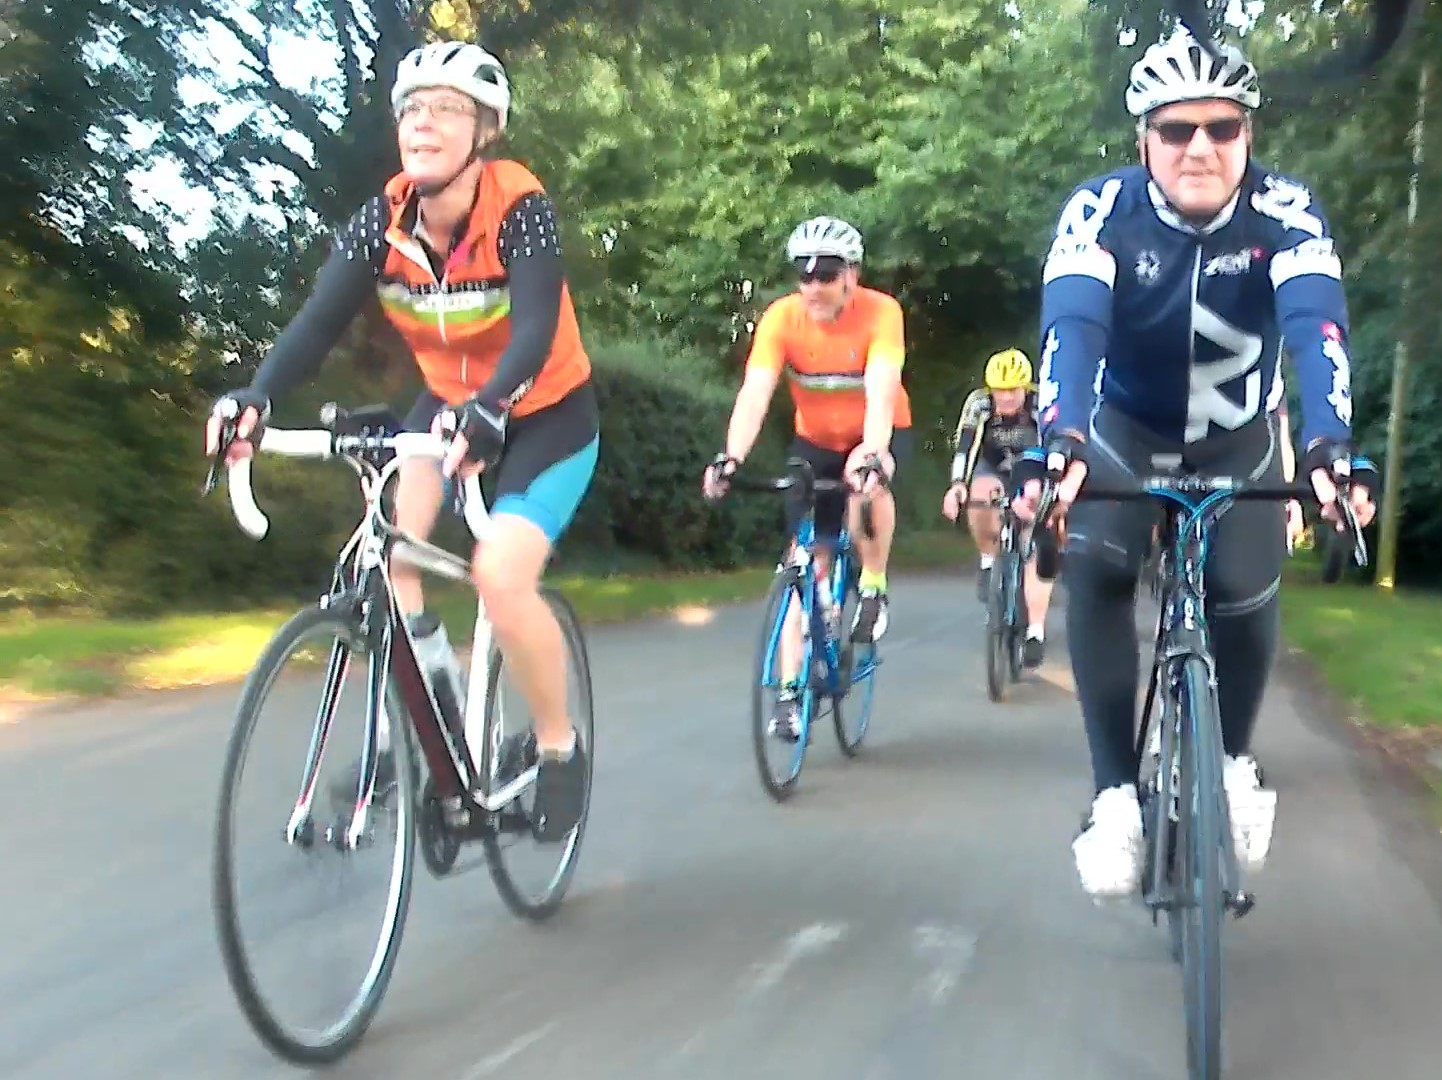 Alison, Gareth & Dave all new to the ride going smoothly through